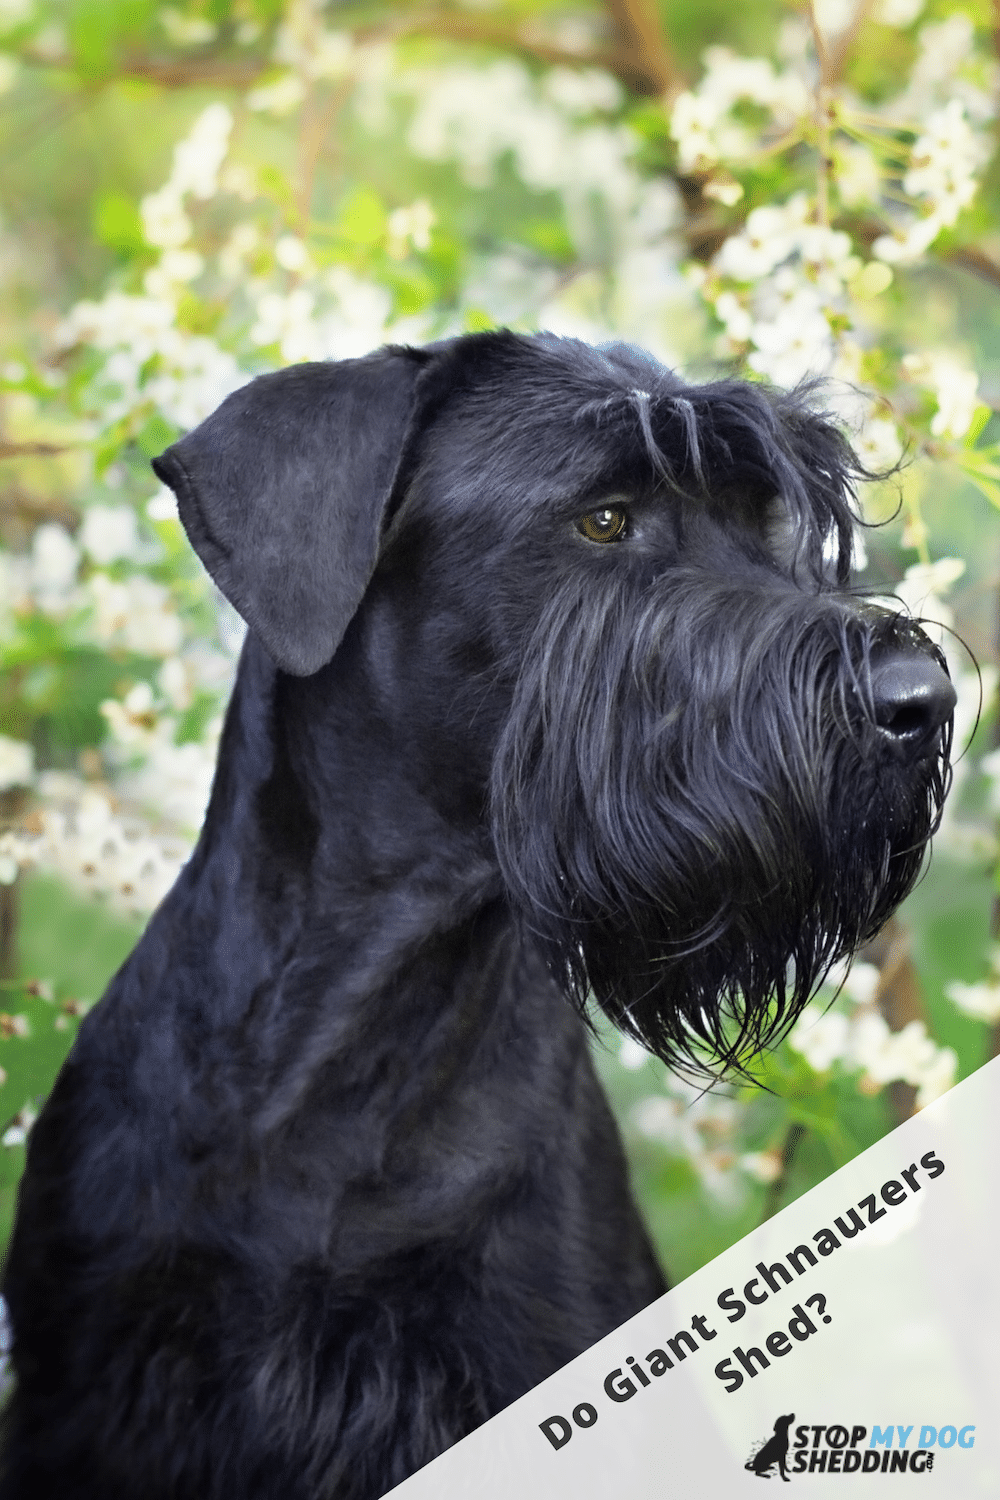 Do Giant Schnauzers Shed Much?